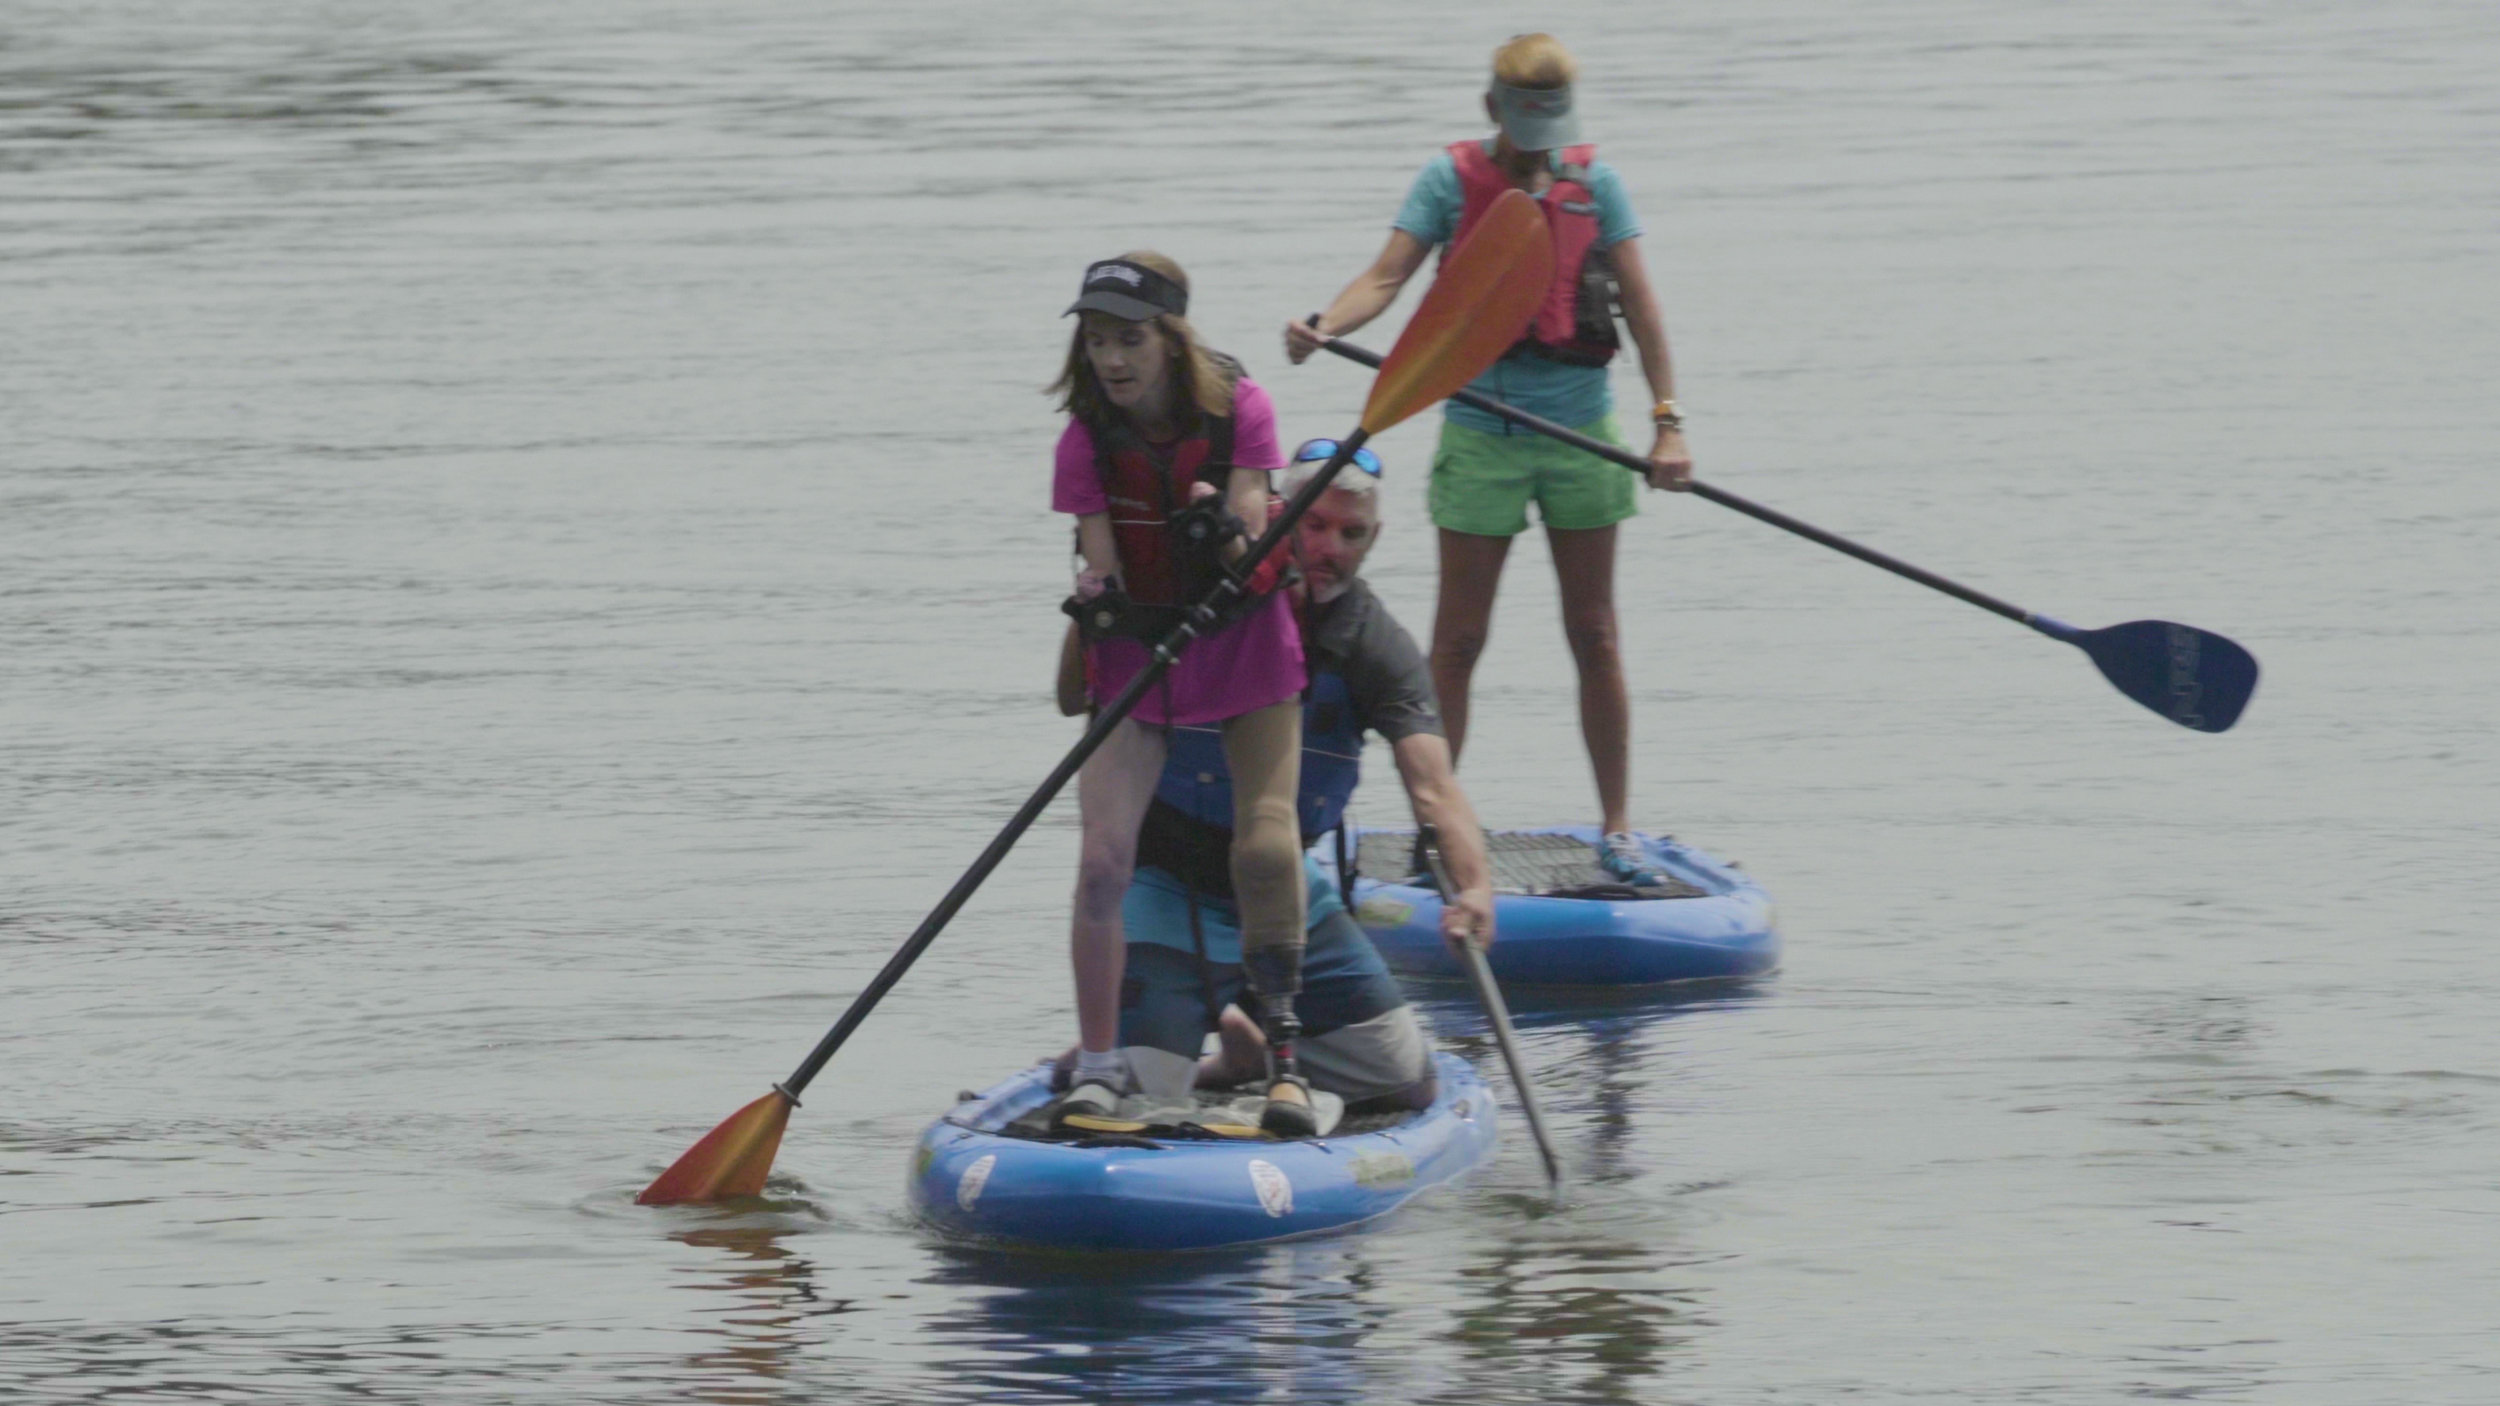 amputee paddle boarding